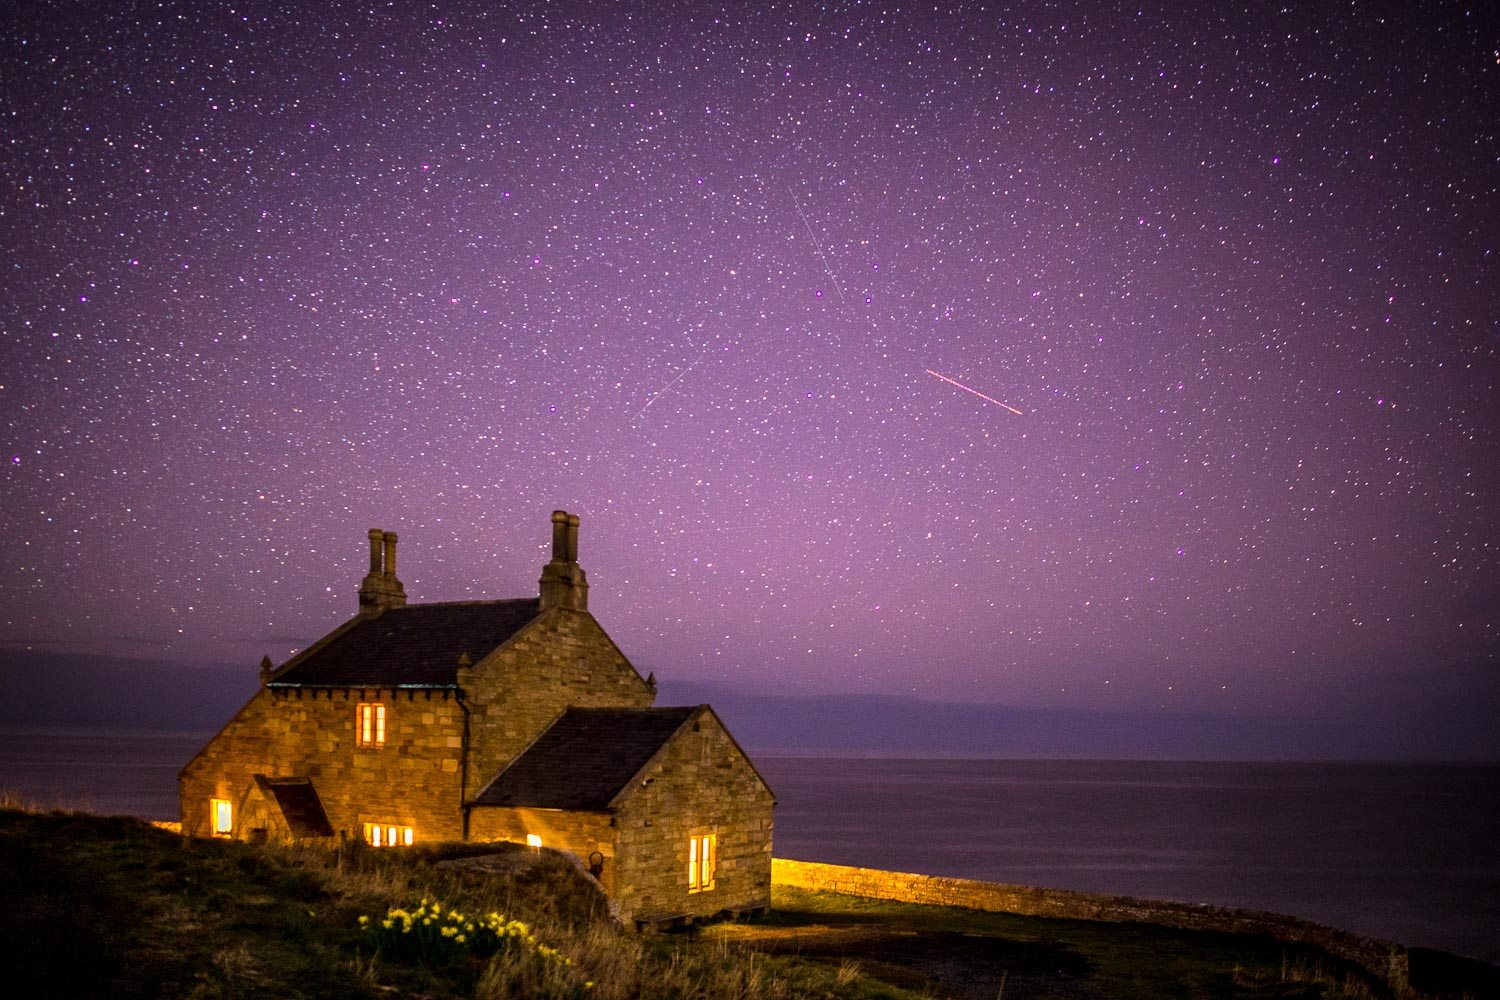 Bathing House, night skies, Northumberland skies